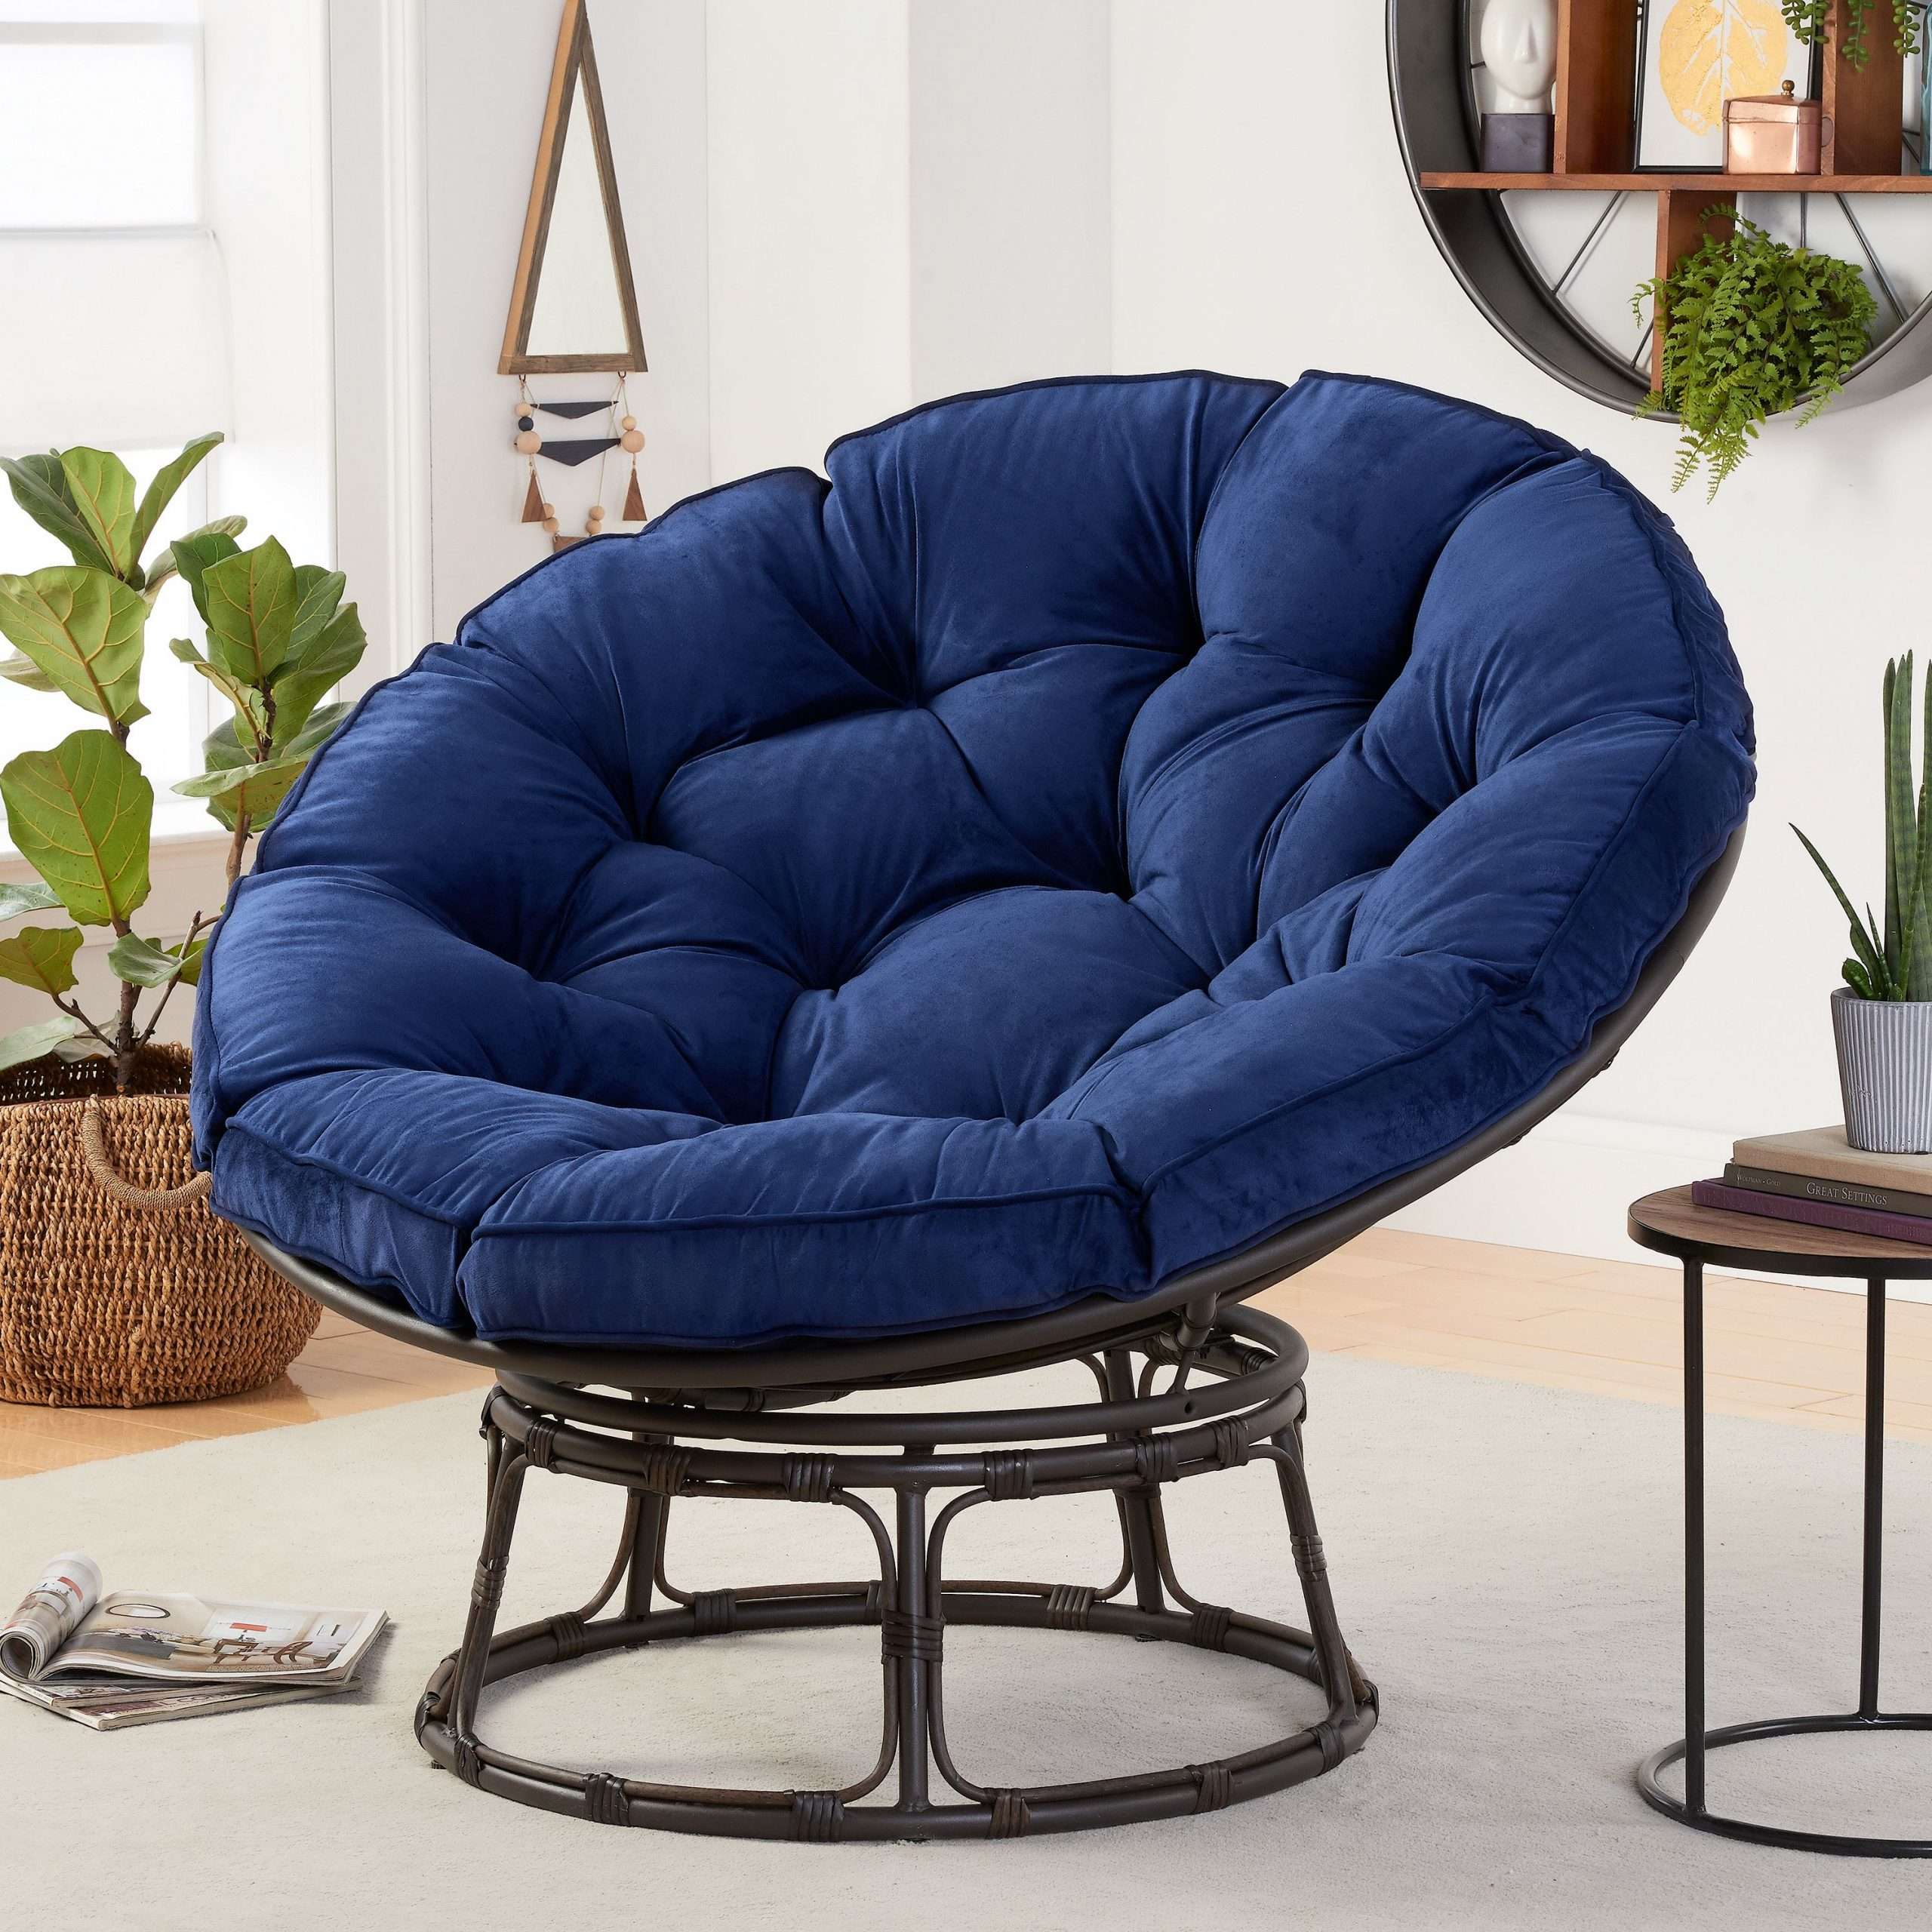 Better Homes & Gardens Papasan Chair With Fabric Cushion, Navy – Walmart In Decker Papasan Chairs (View 6 of 15)